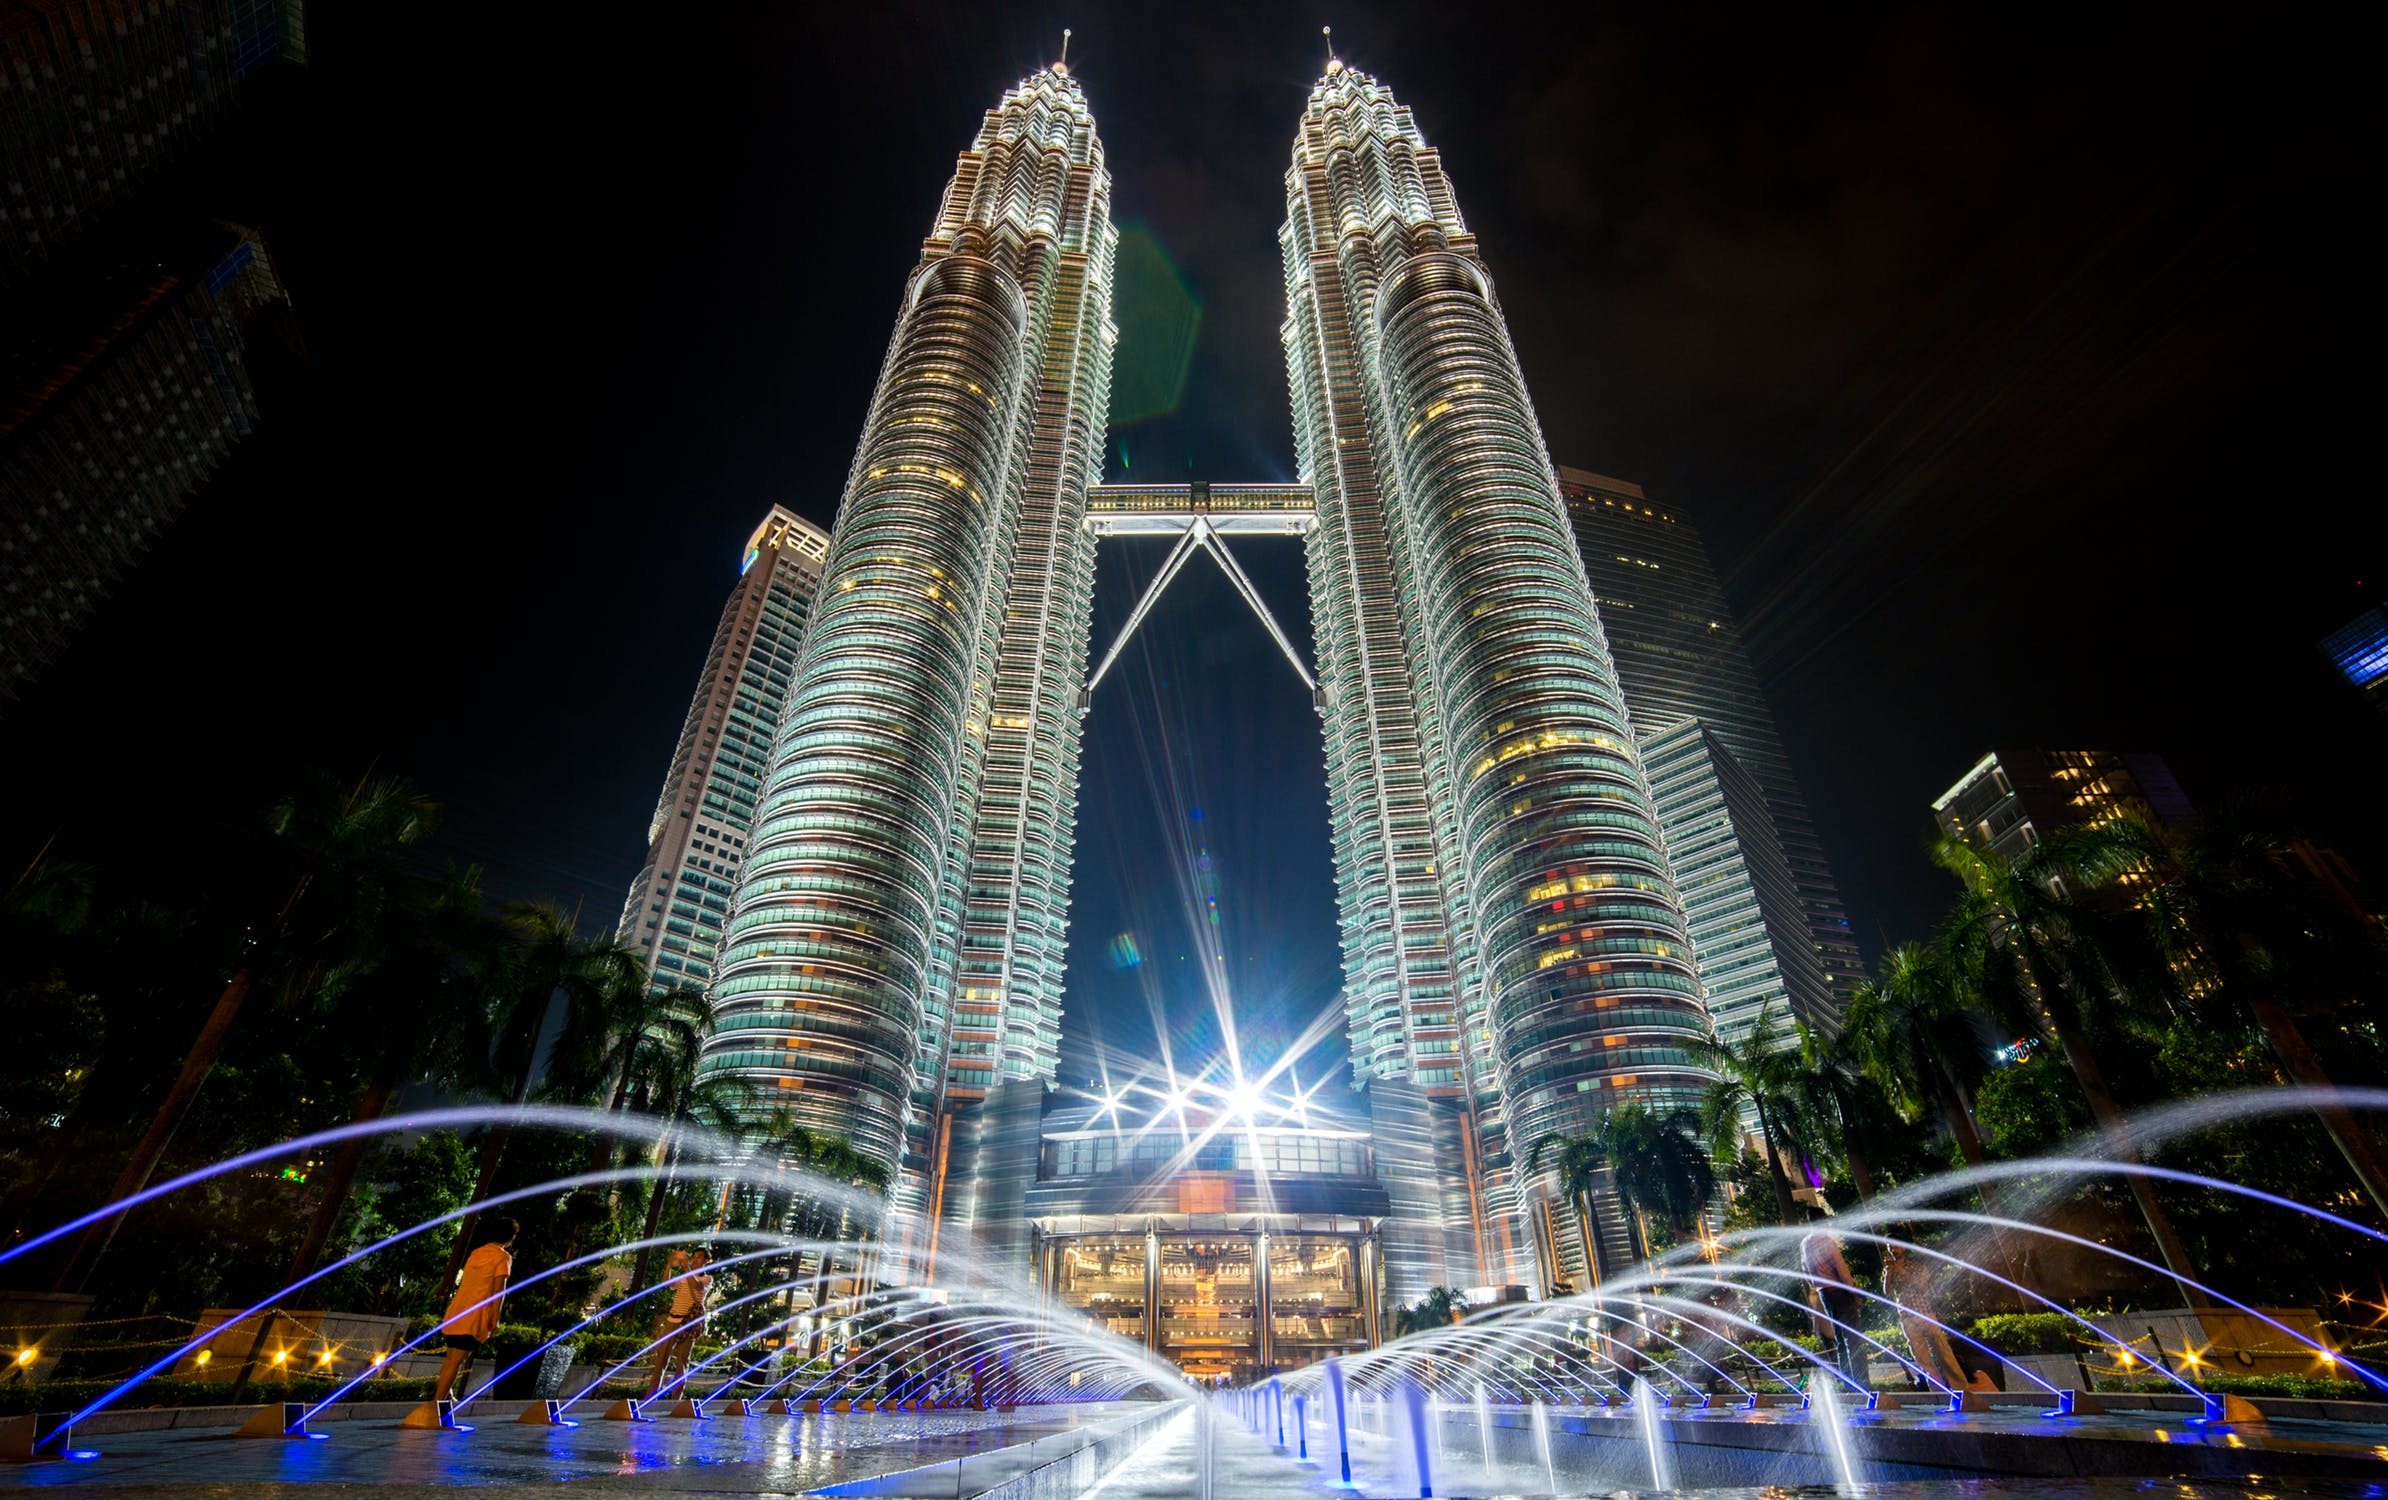 petronas twin tower - places to visit in malaysia